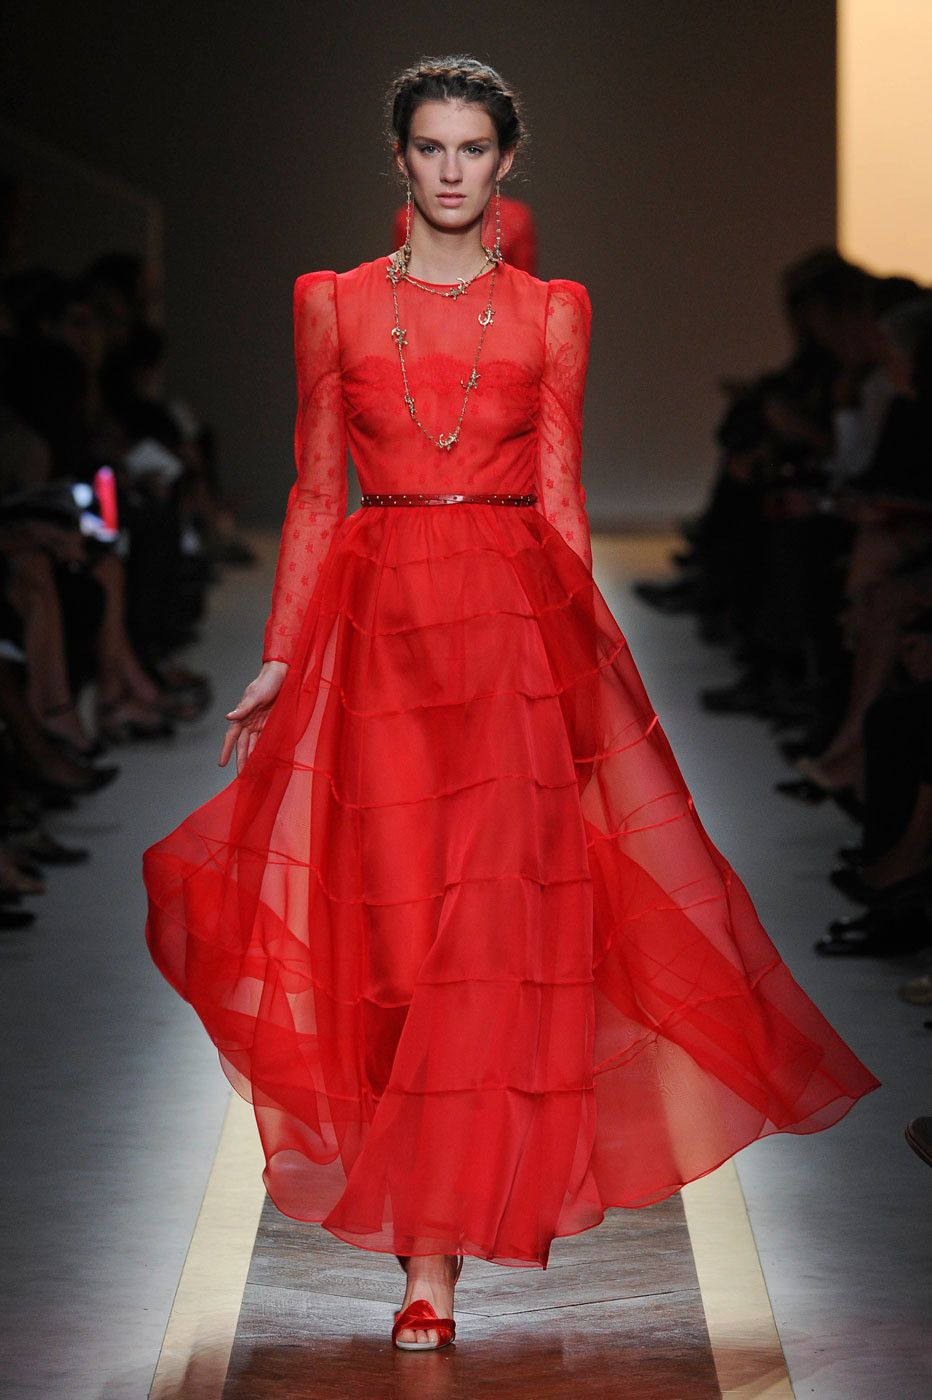 Valentino Spring 2012 Ready-to-Wear by Maria Grazia Chiuri and Pier Paolo Piccioli